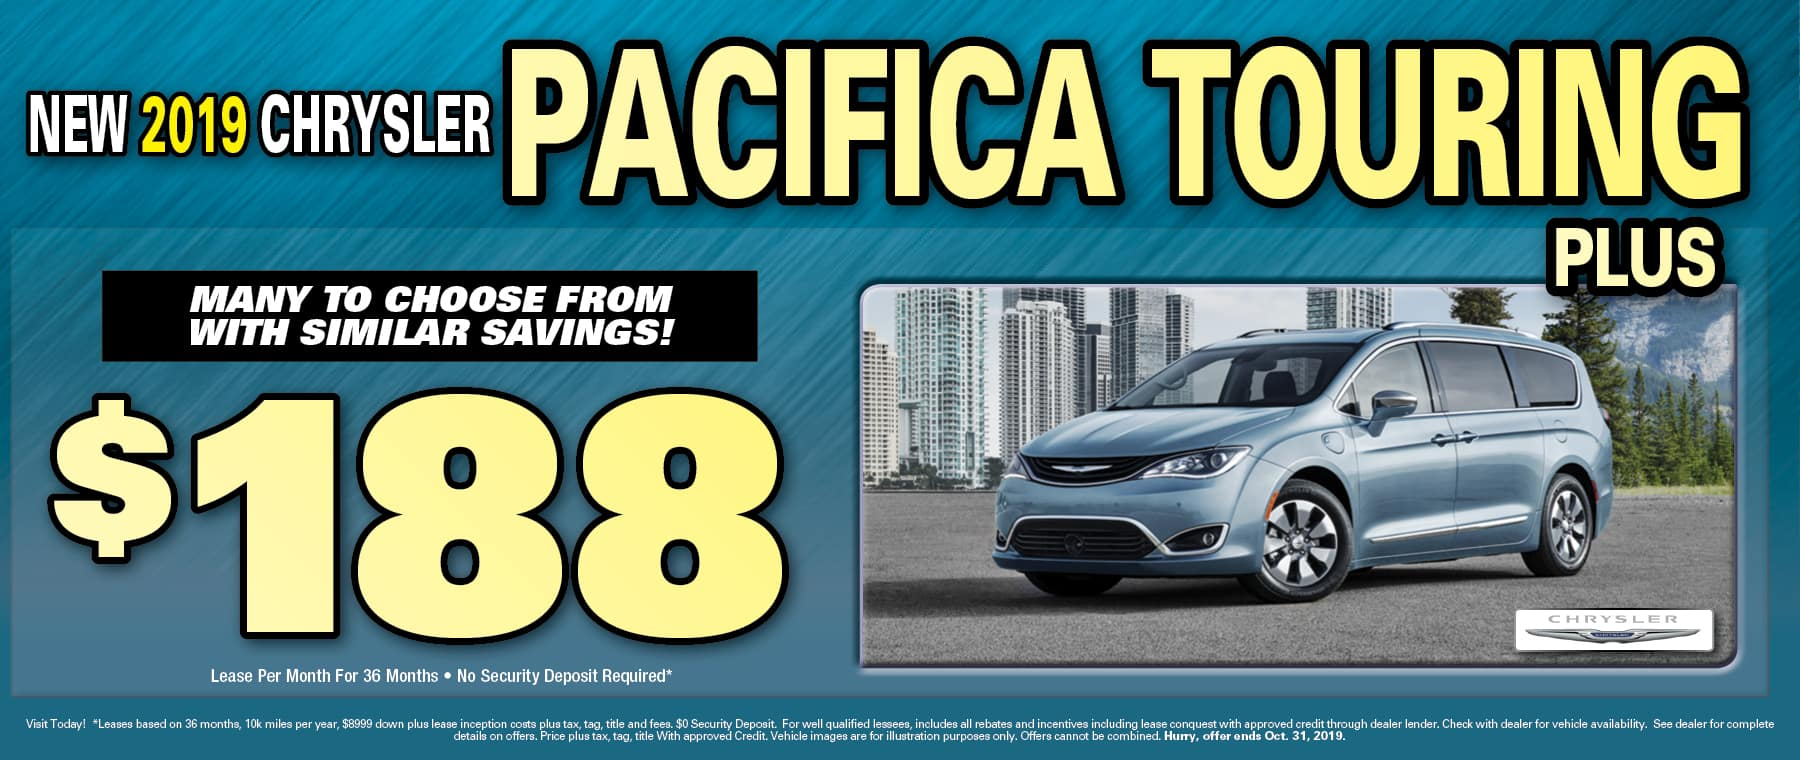 New Chrysler Pacificas!